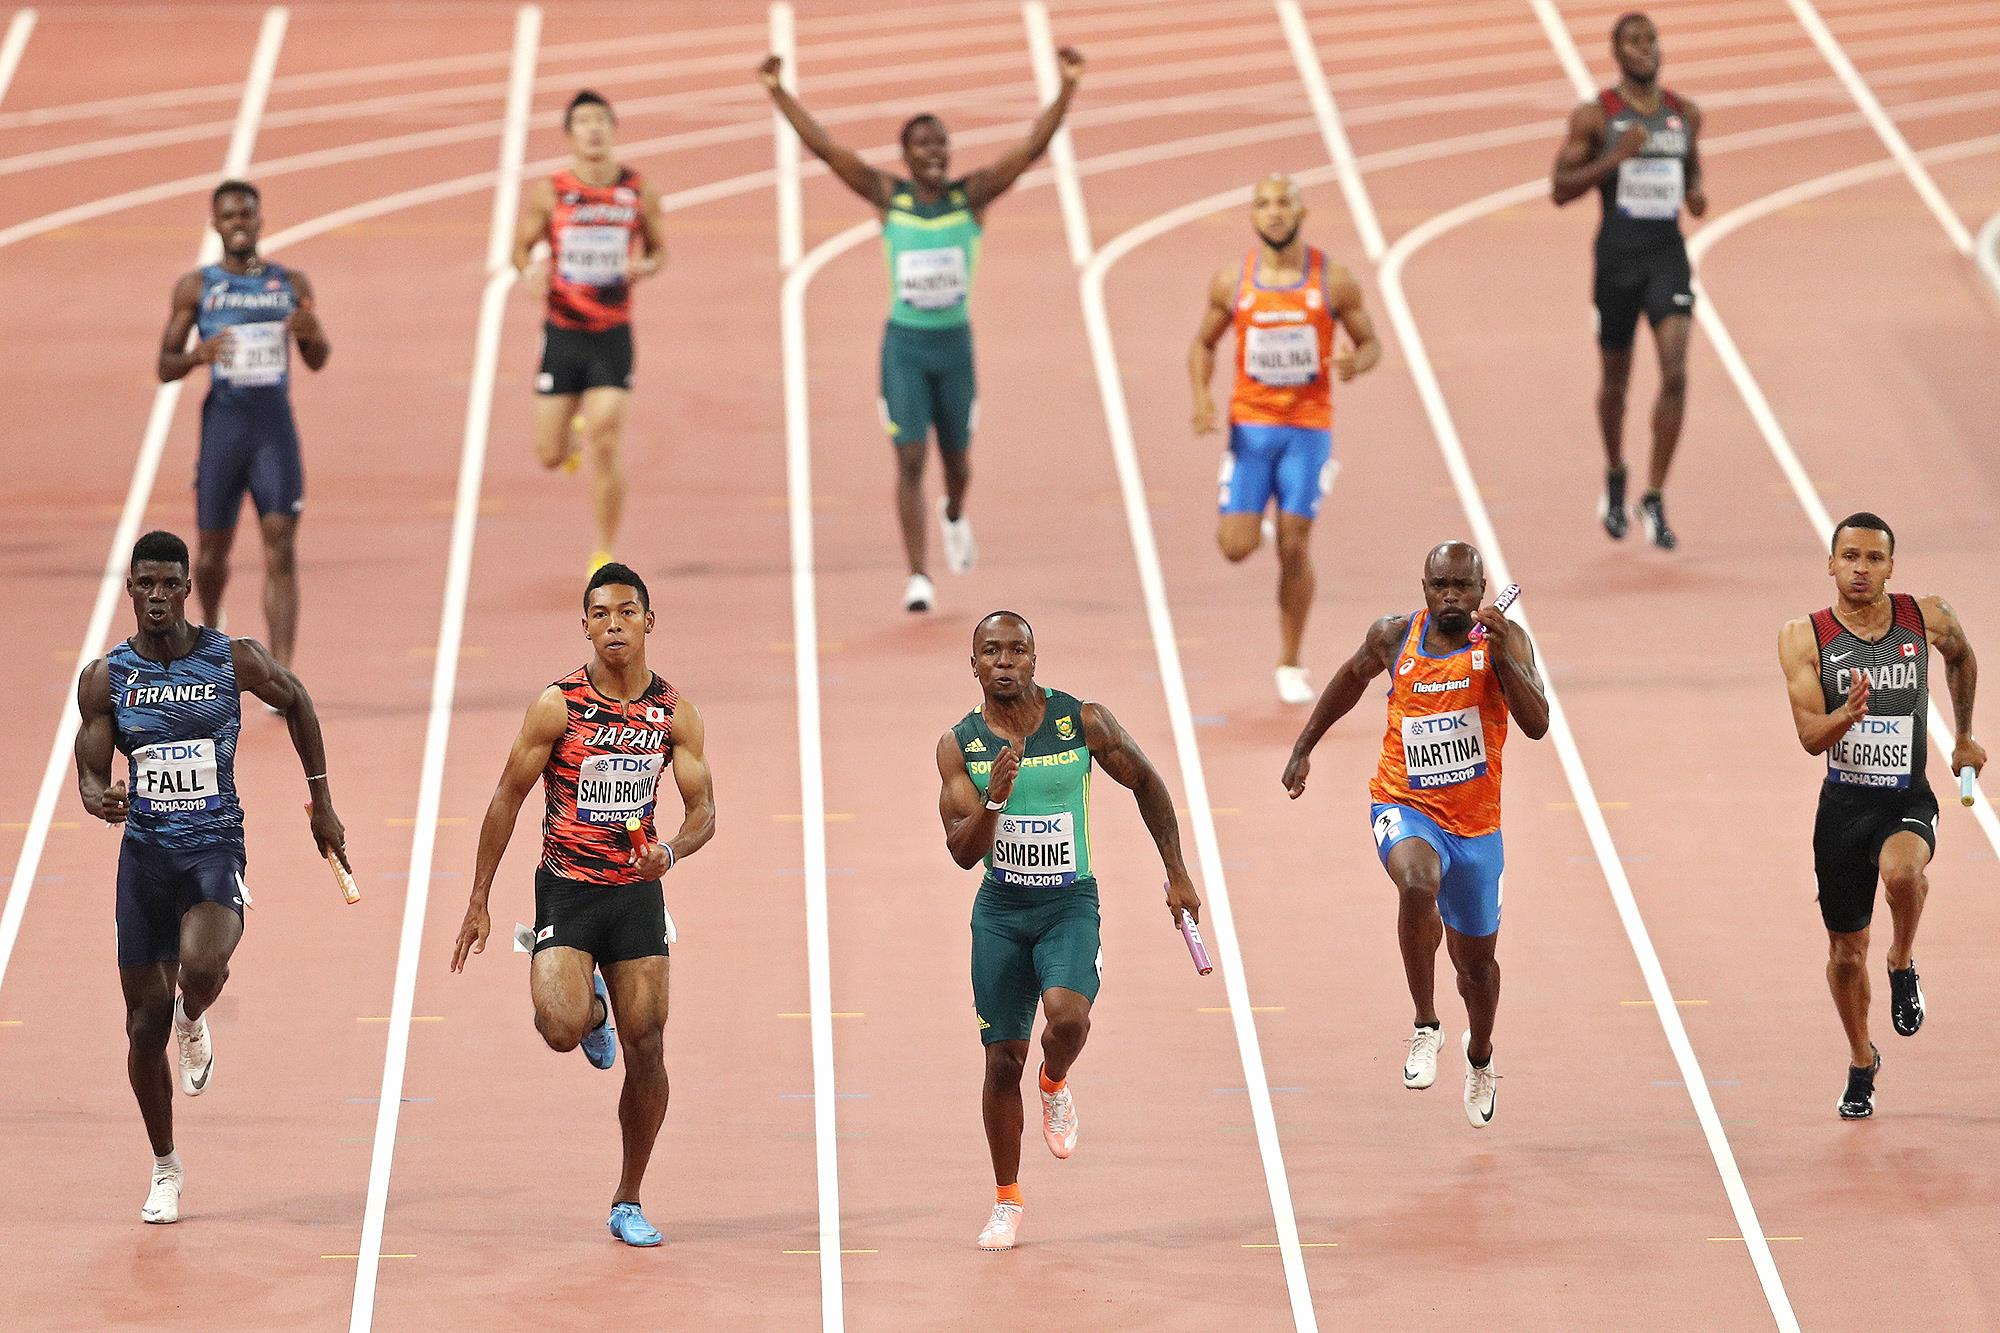 The men's 4x100m at the World Athletics Championships Doha 2019 (Getty Images)